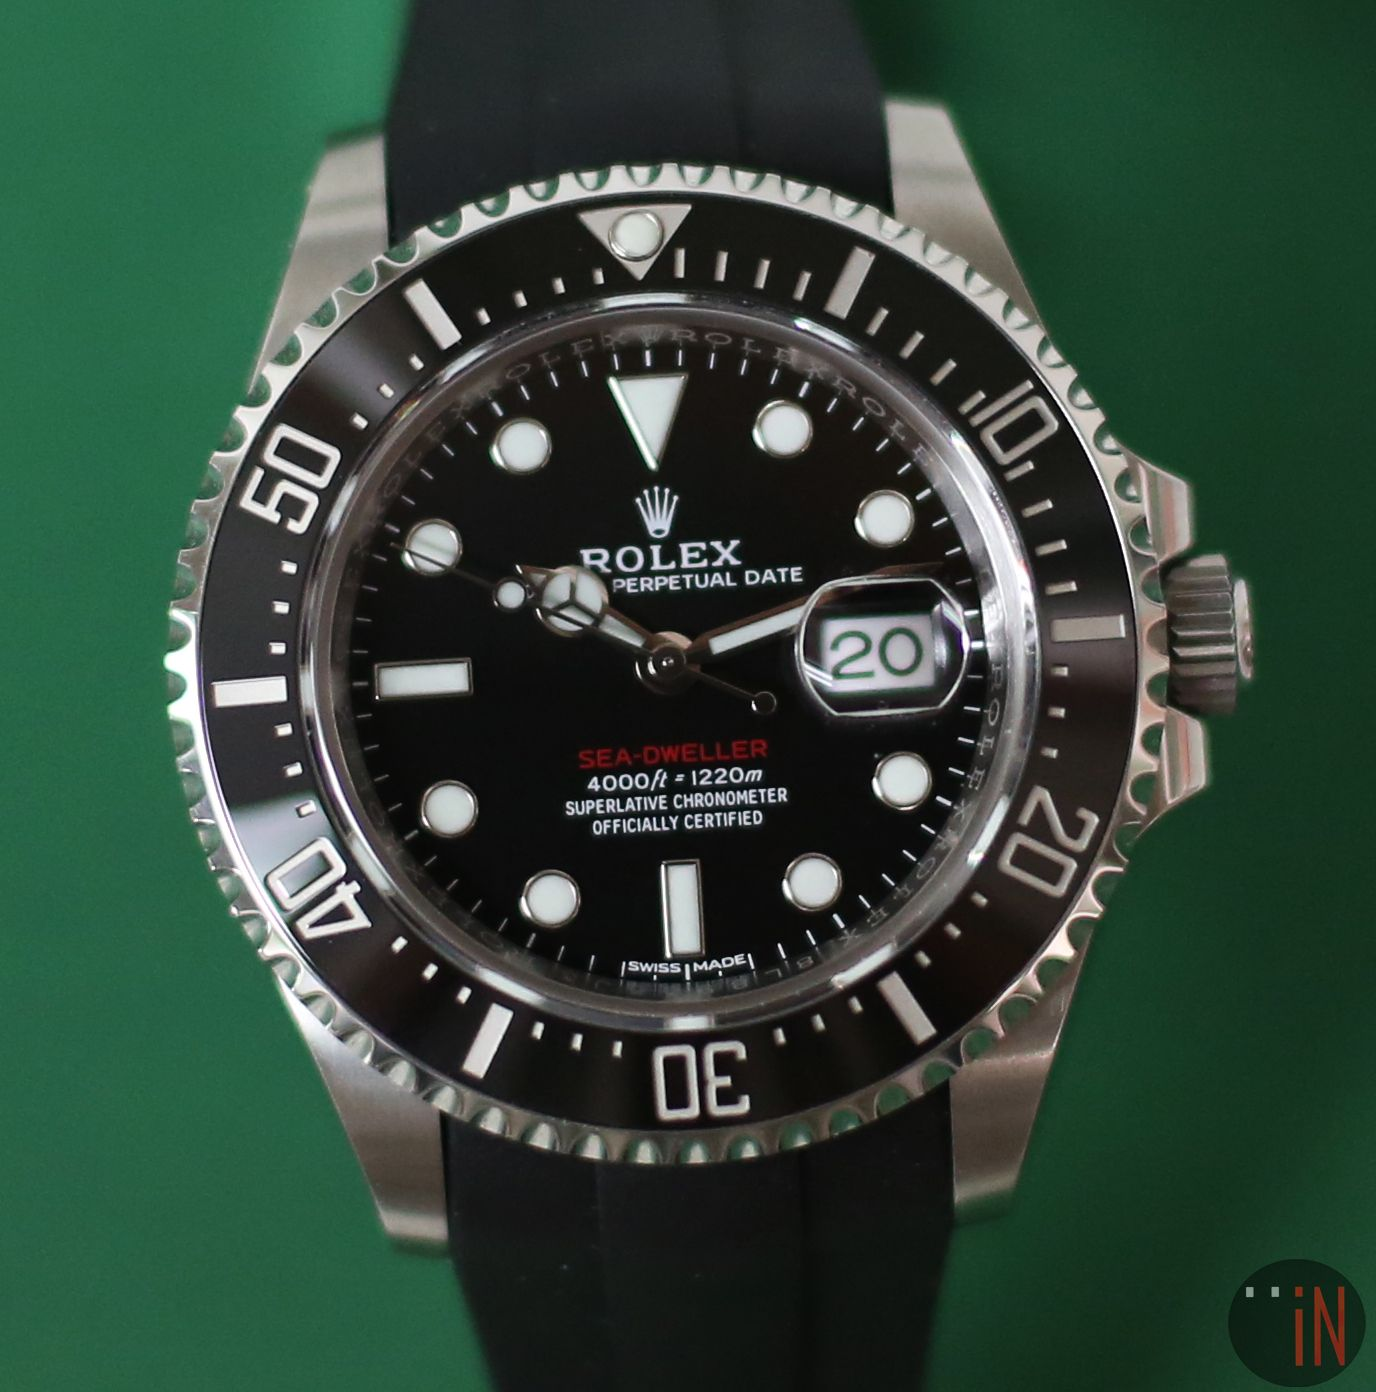 A Fresh Fit Rolex 43mm Sea Dweller Red Writing 4000ft Unpolished Ref 126600 With Cyclops On A Rubberb Strap Circa 2017 Http Www Elementinti ว นเทจ